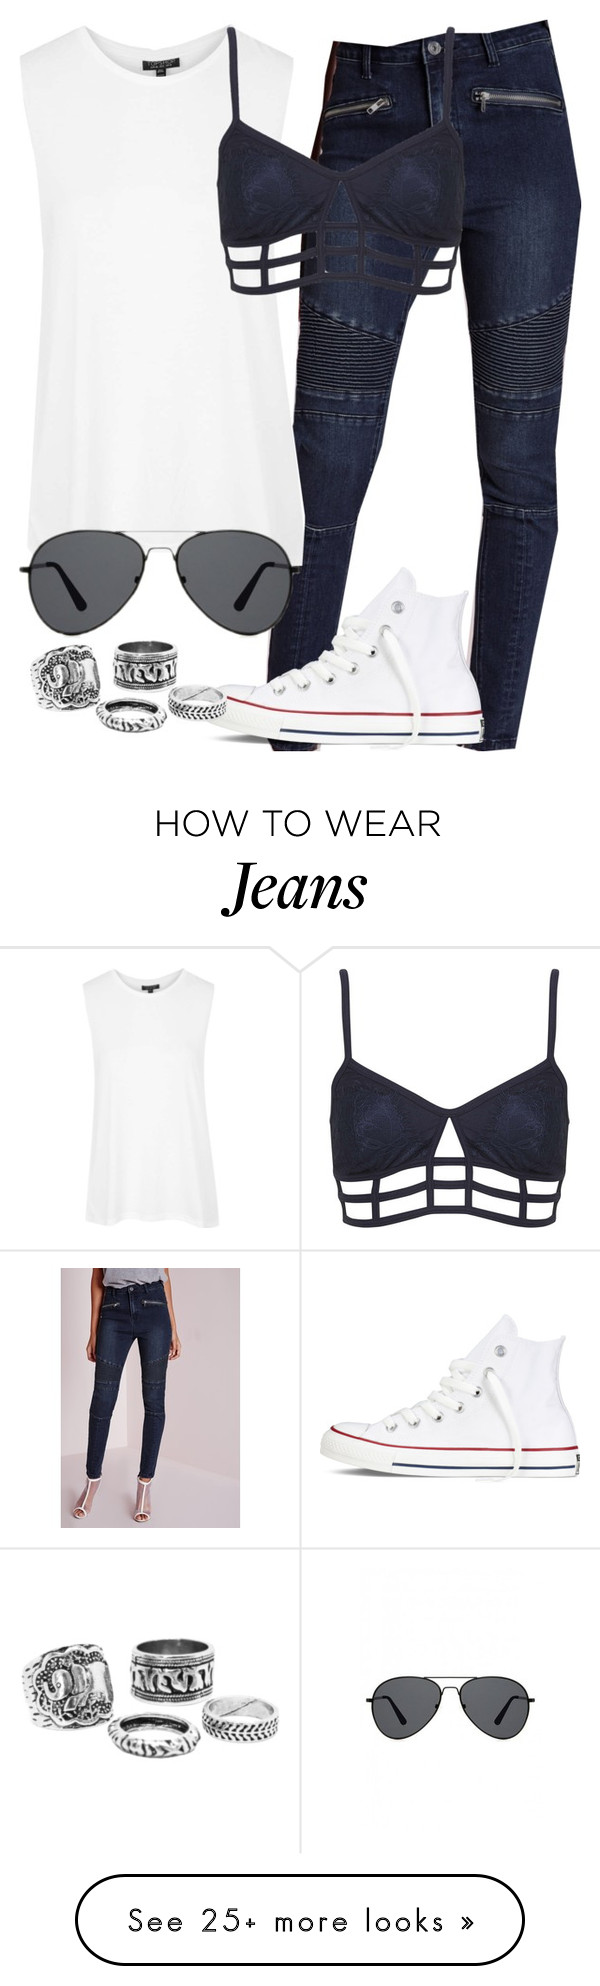 """""""biker jeans insp"""" by littlemixmakeup on Polyvore featuring Topshop, Converse and Missguided"""